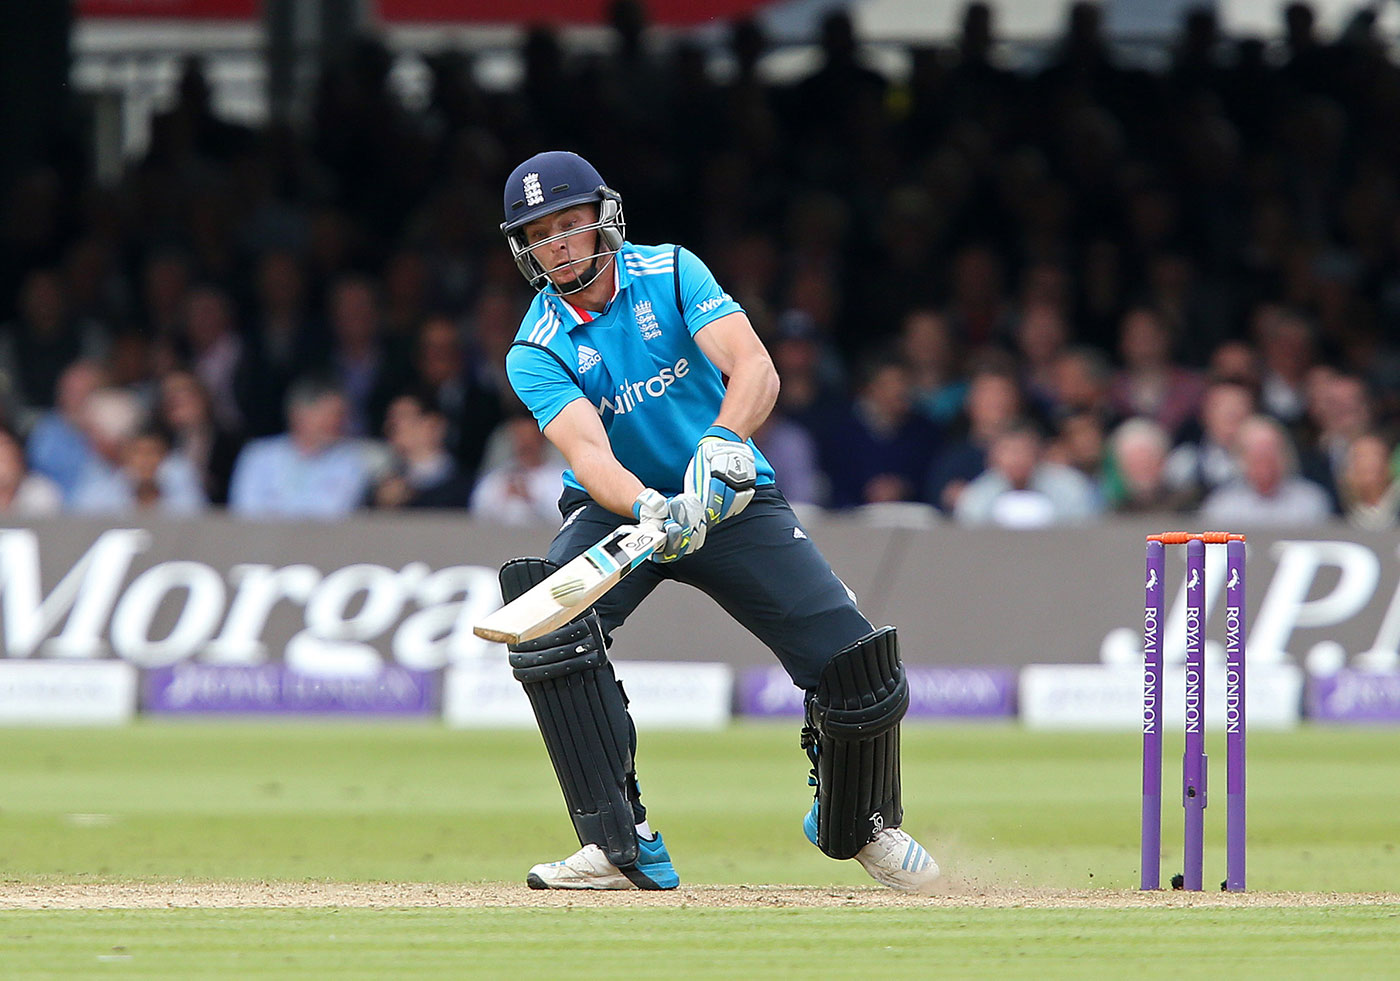 Scoopy Doo: during his 61-ball hundred against Sri Lanka at Lord's in 2014